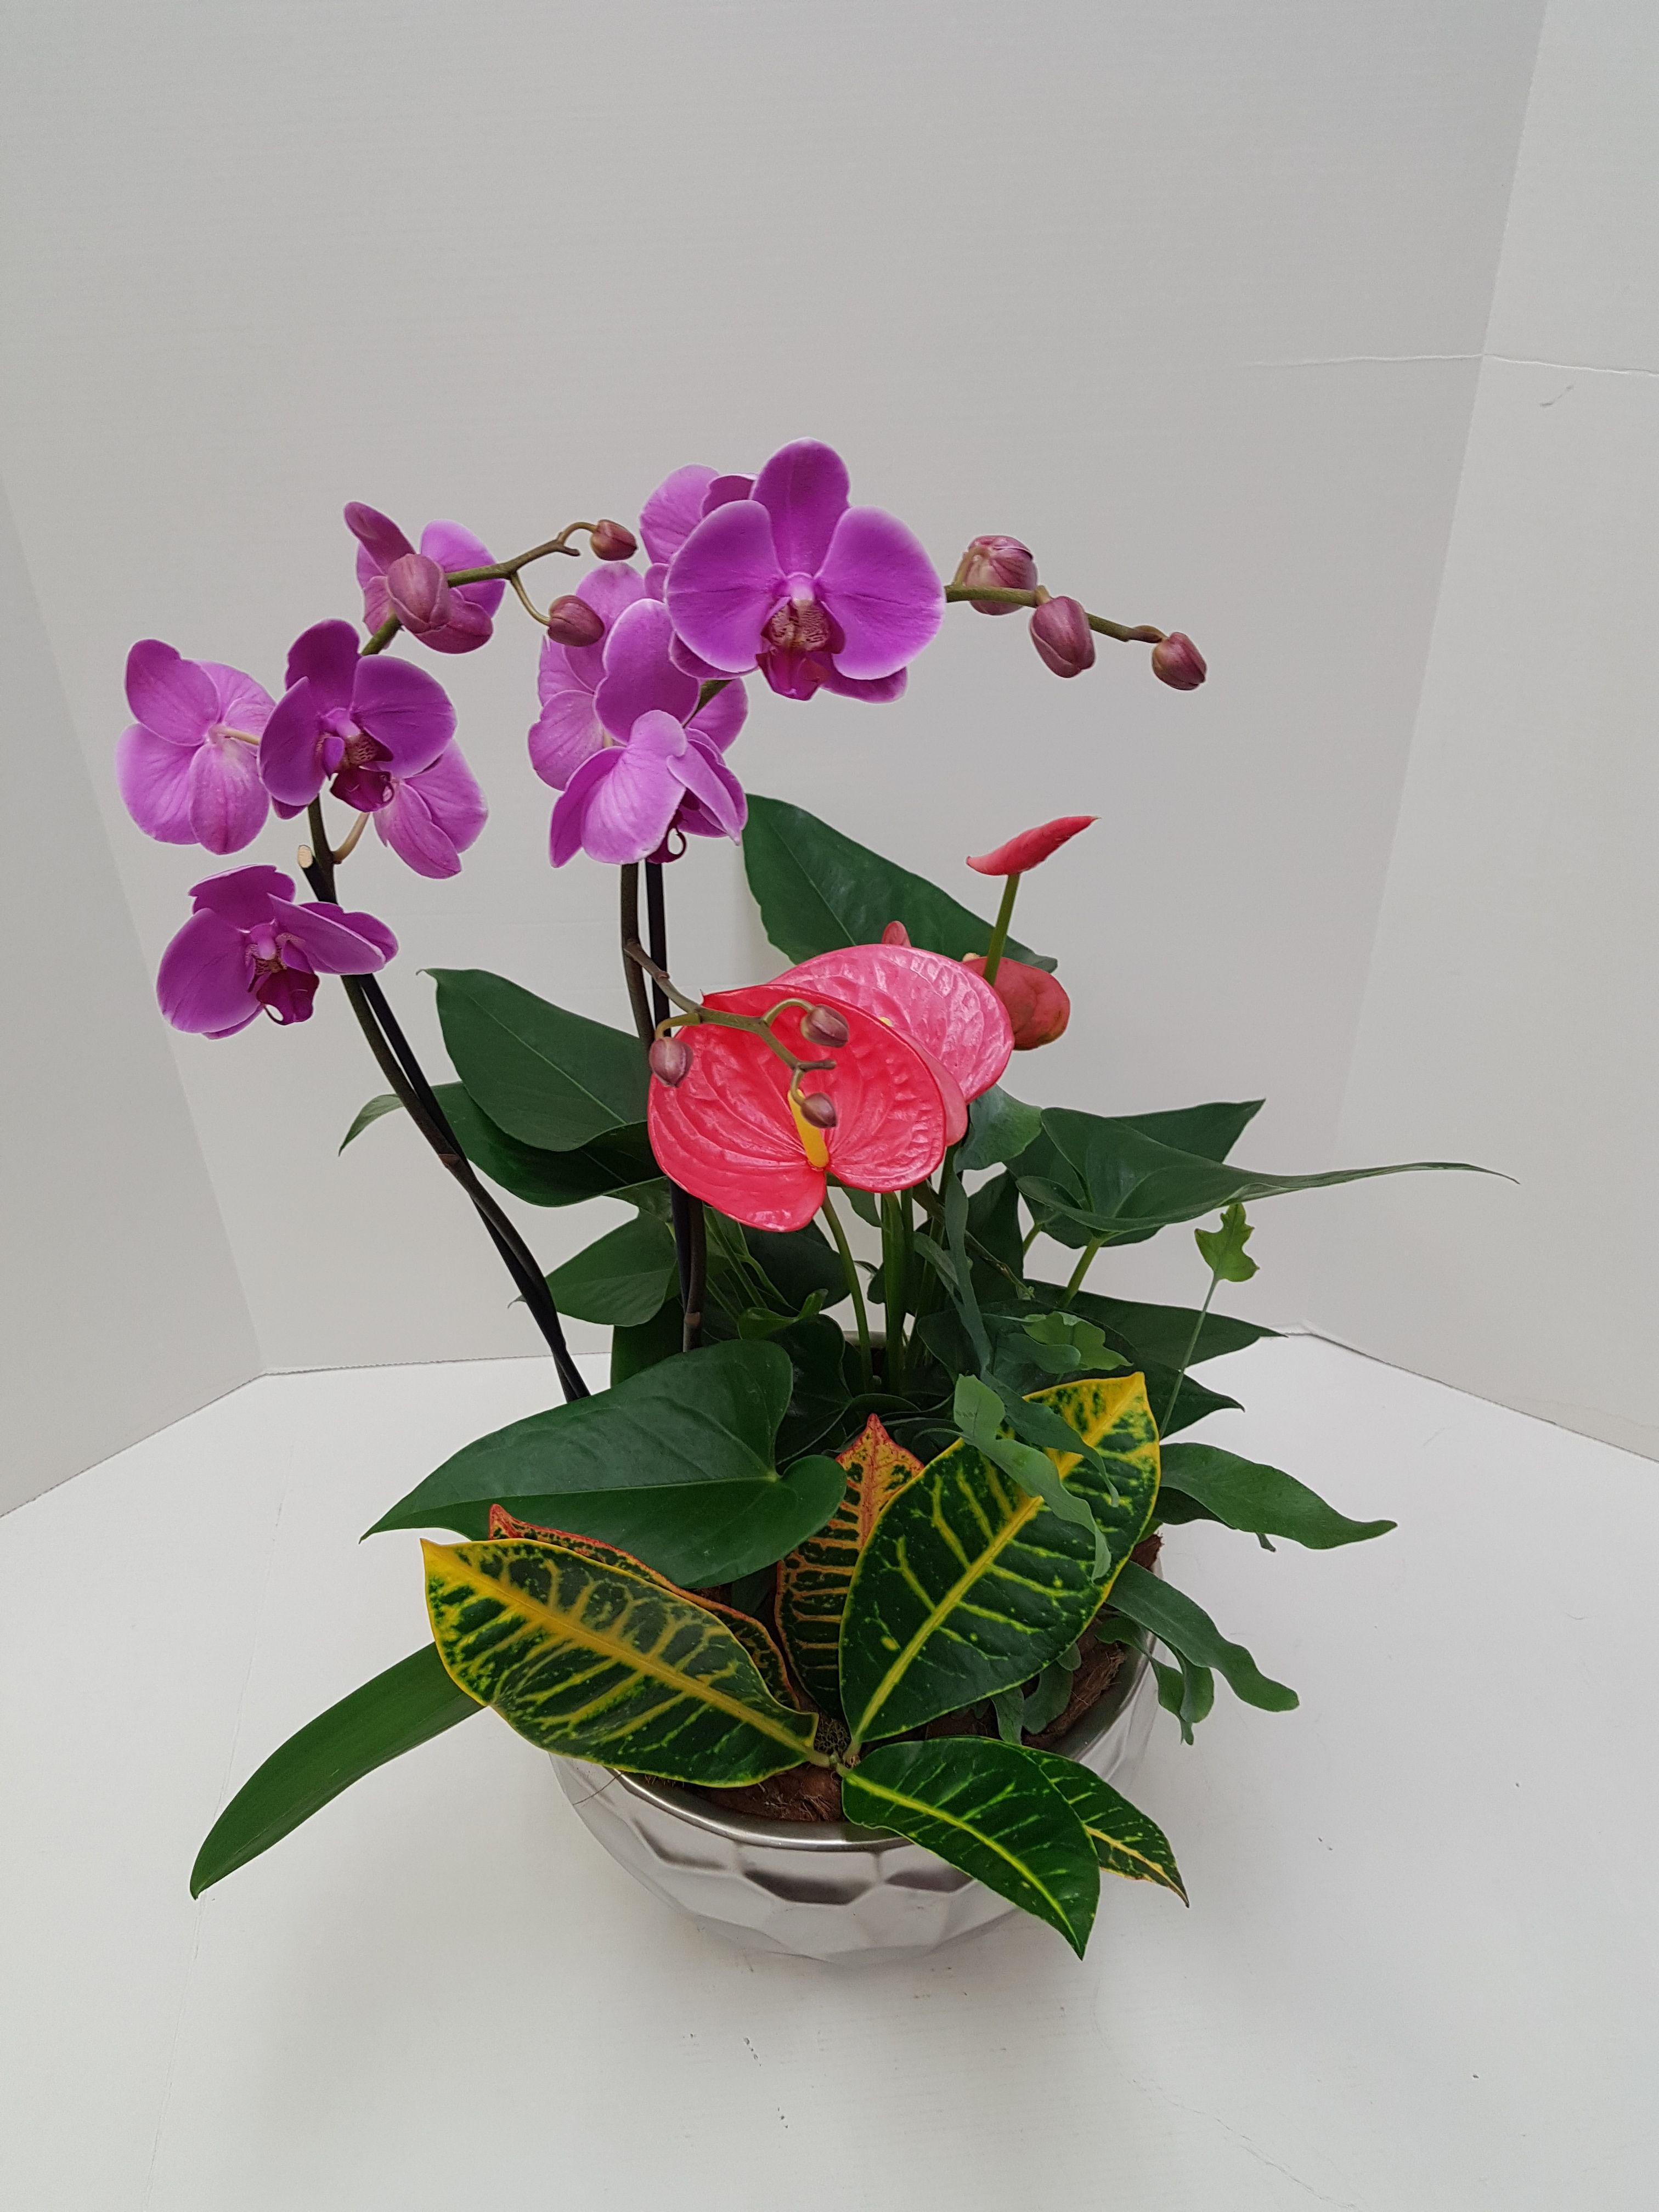 Check out this beautiful tropical planter with an Orchid